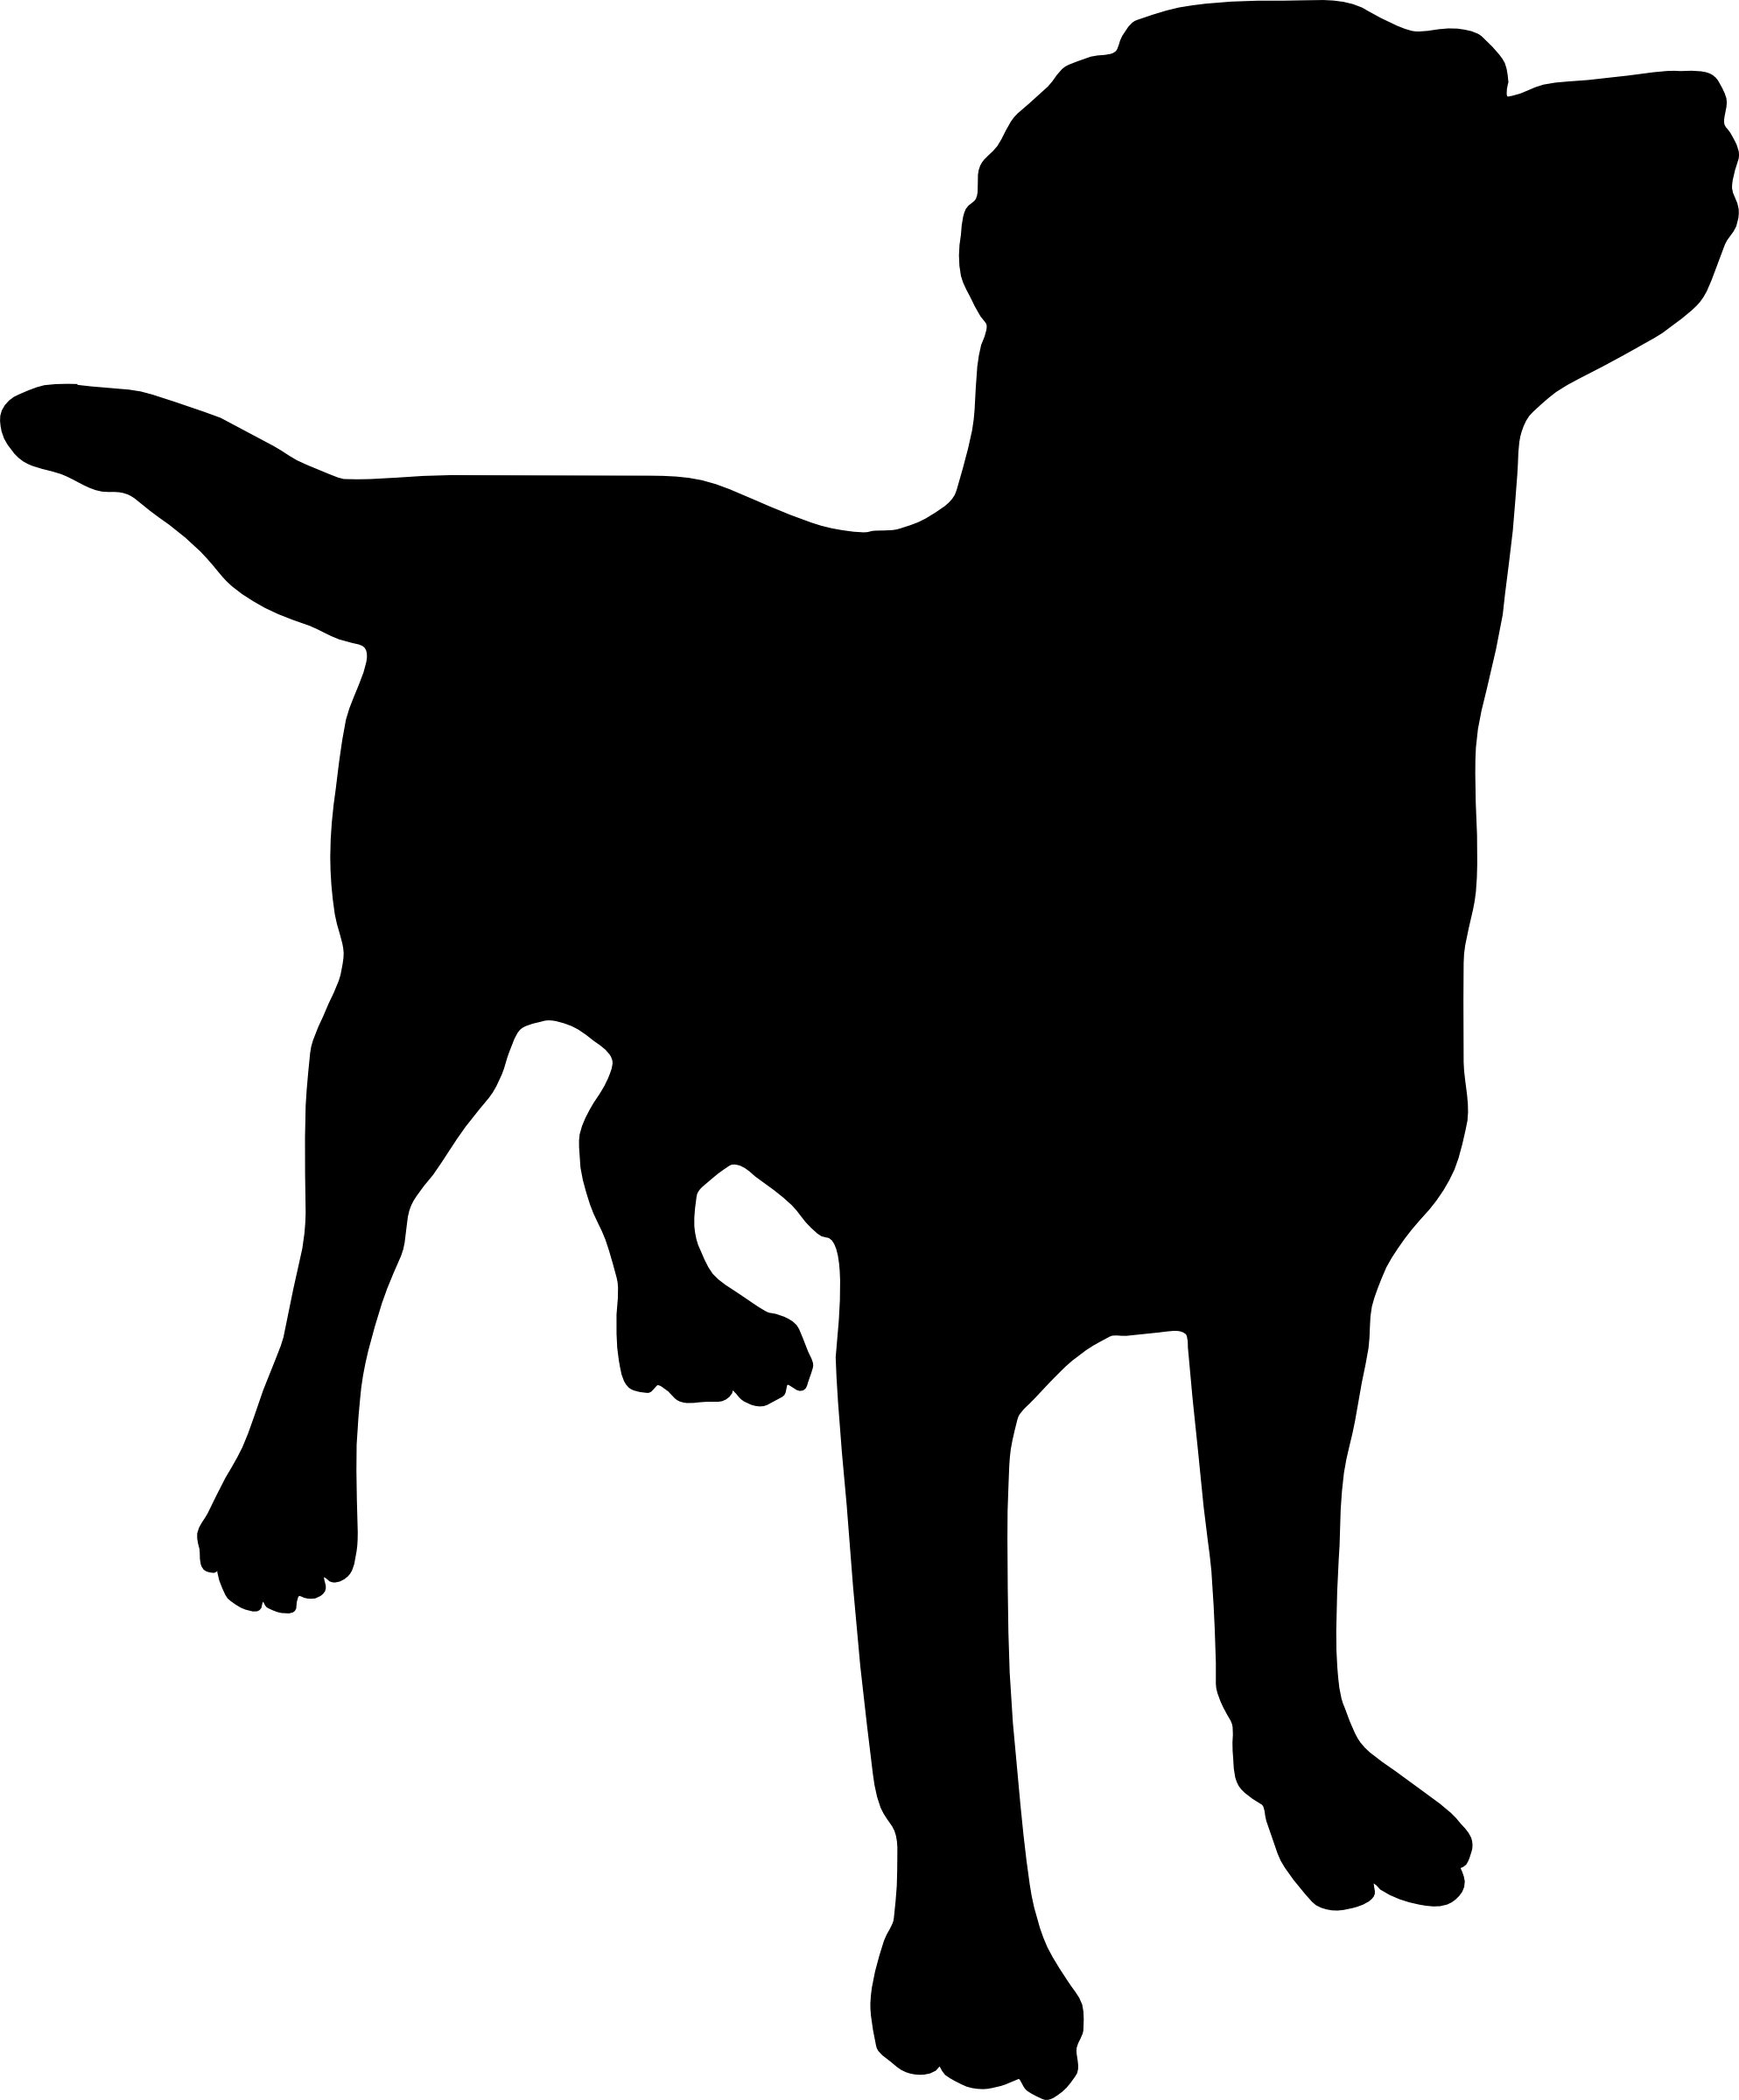 Dog hugging cat clipart png royalty free download Dog Cat Silhouette at GetDrawings.com | Free for personal use Dog ... png royalty free download